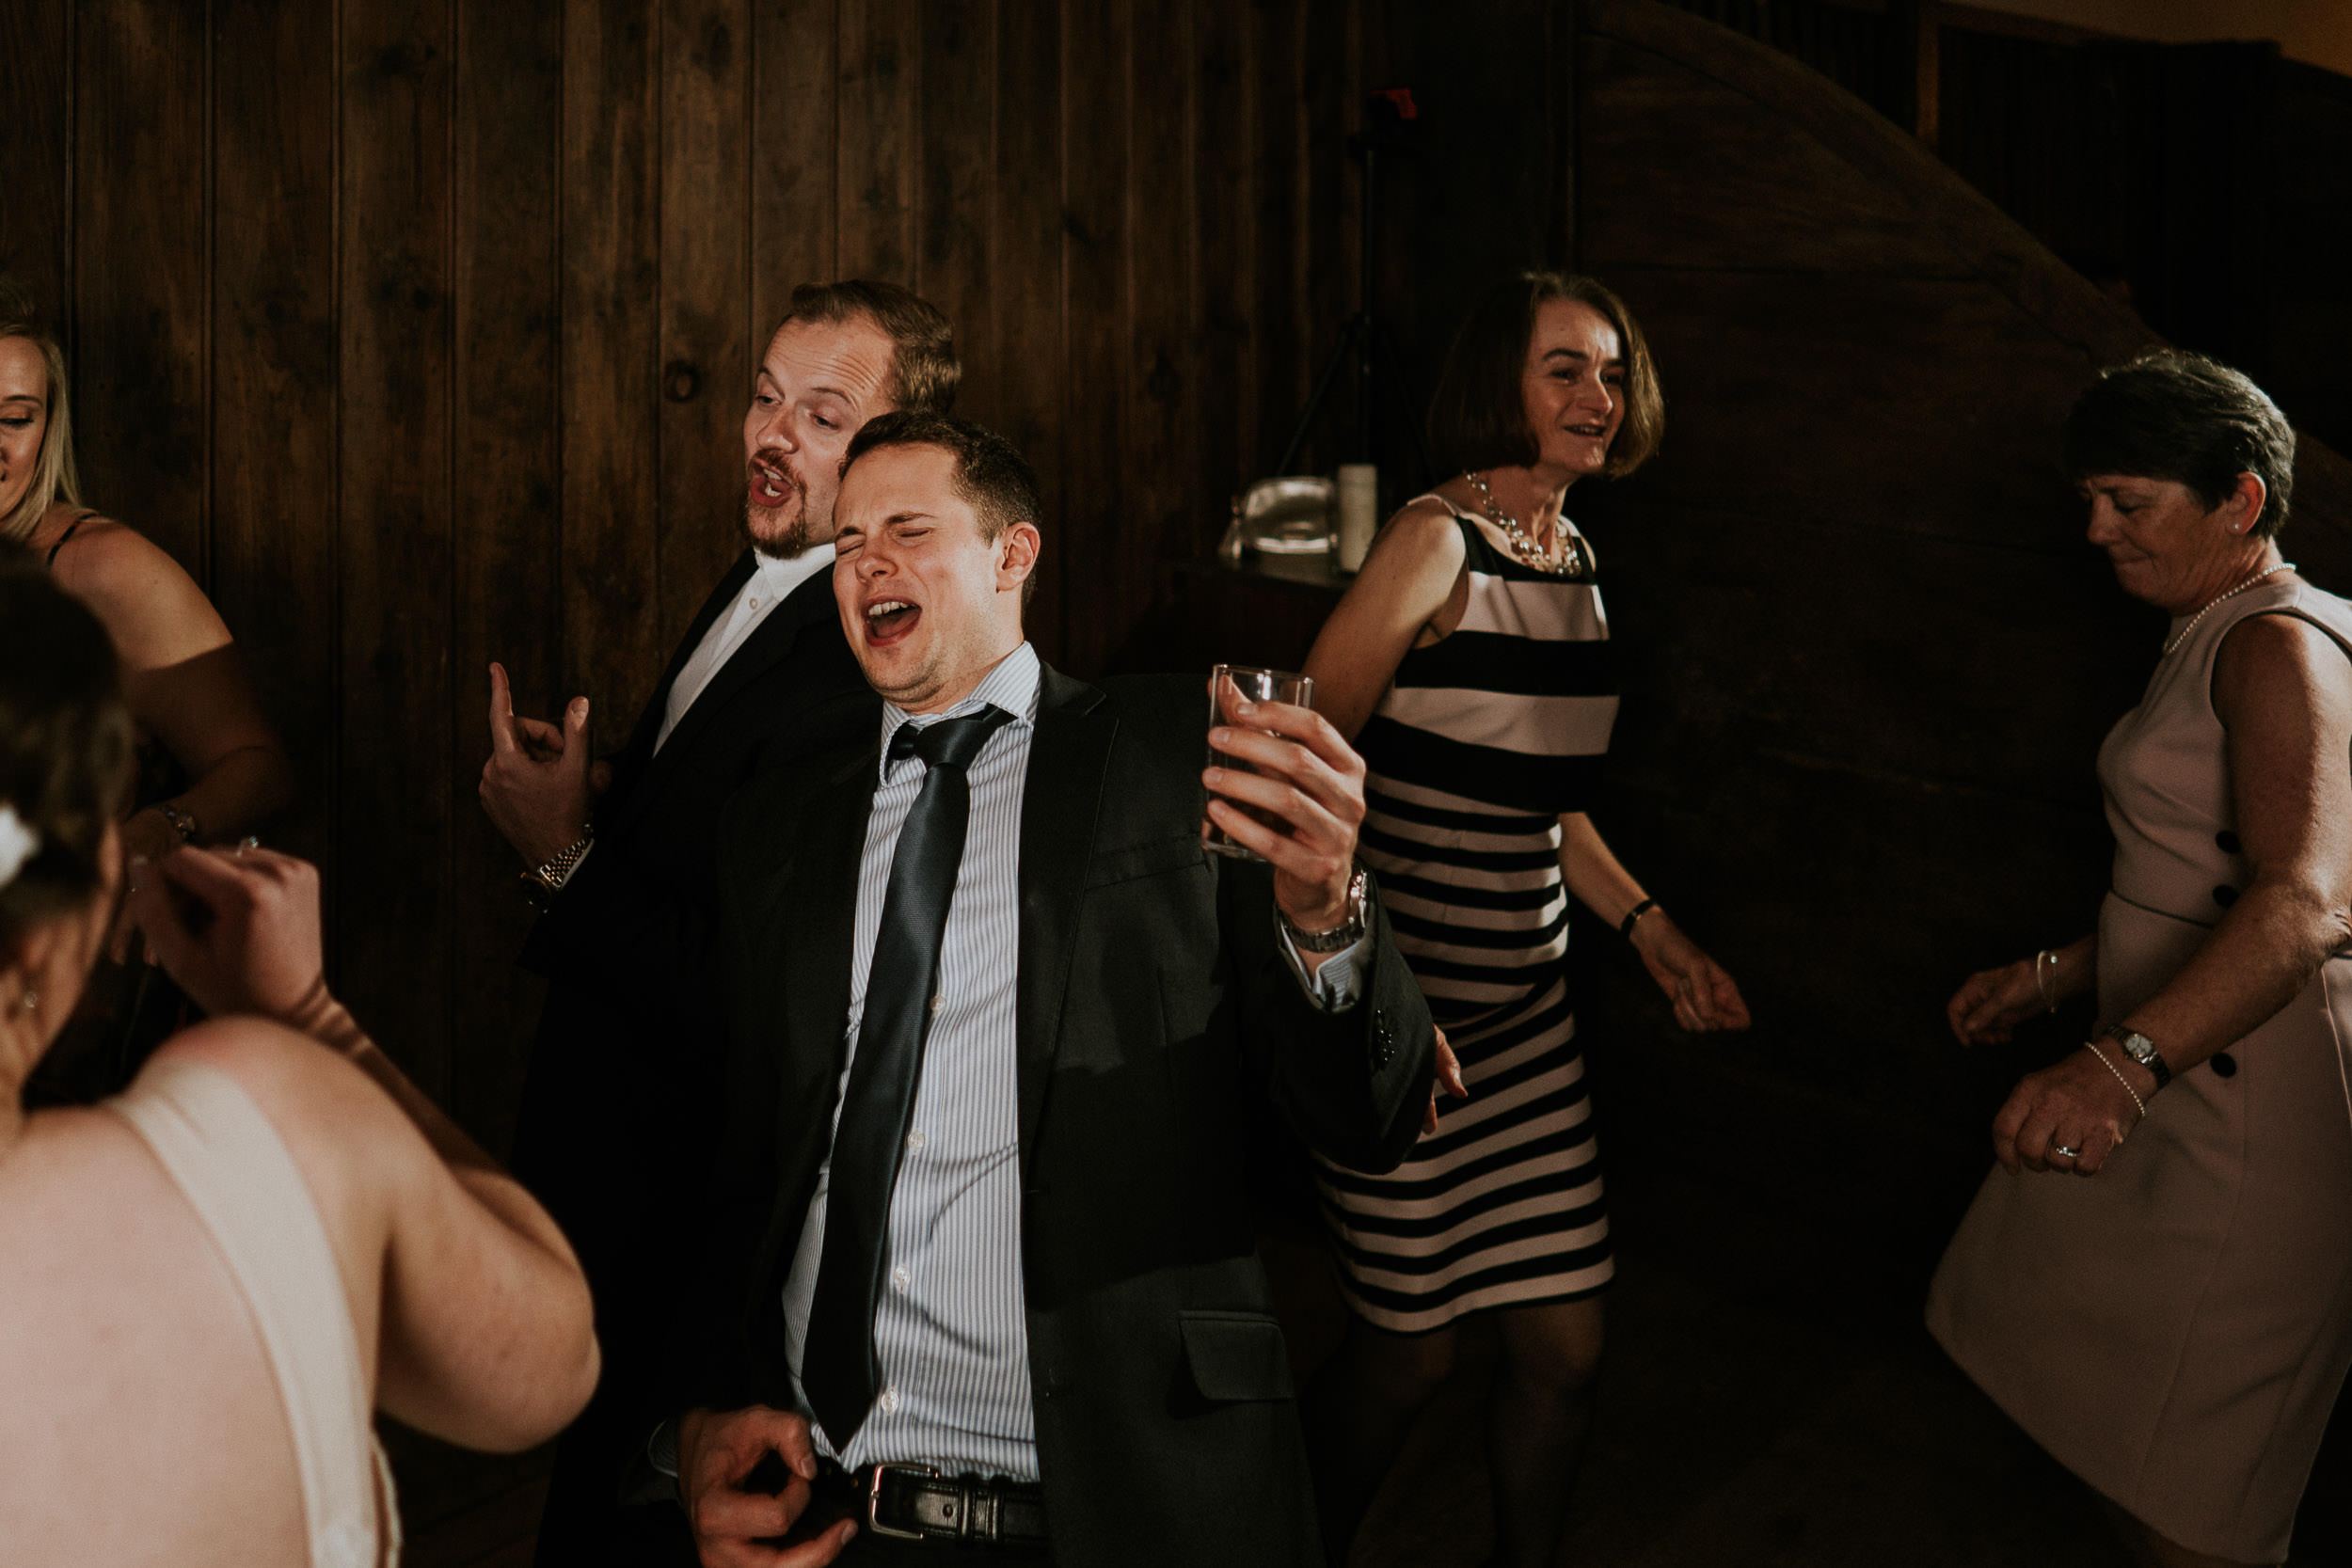 Pennard House Wedding - Guests on the Dance Floor